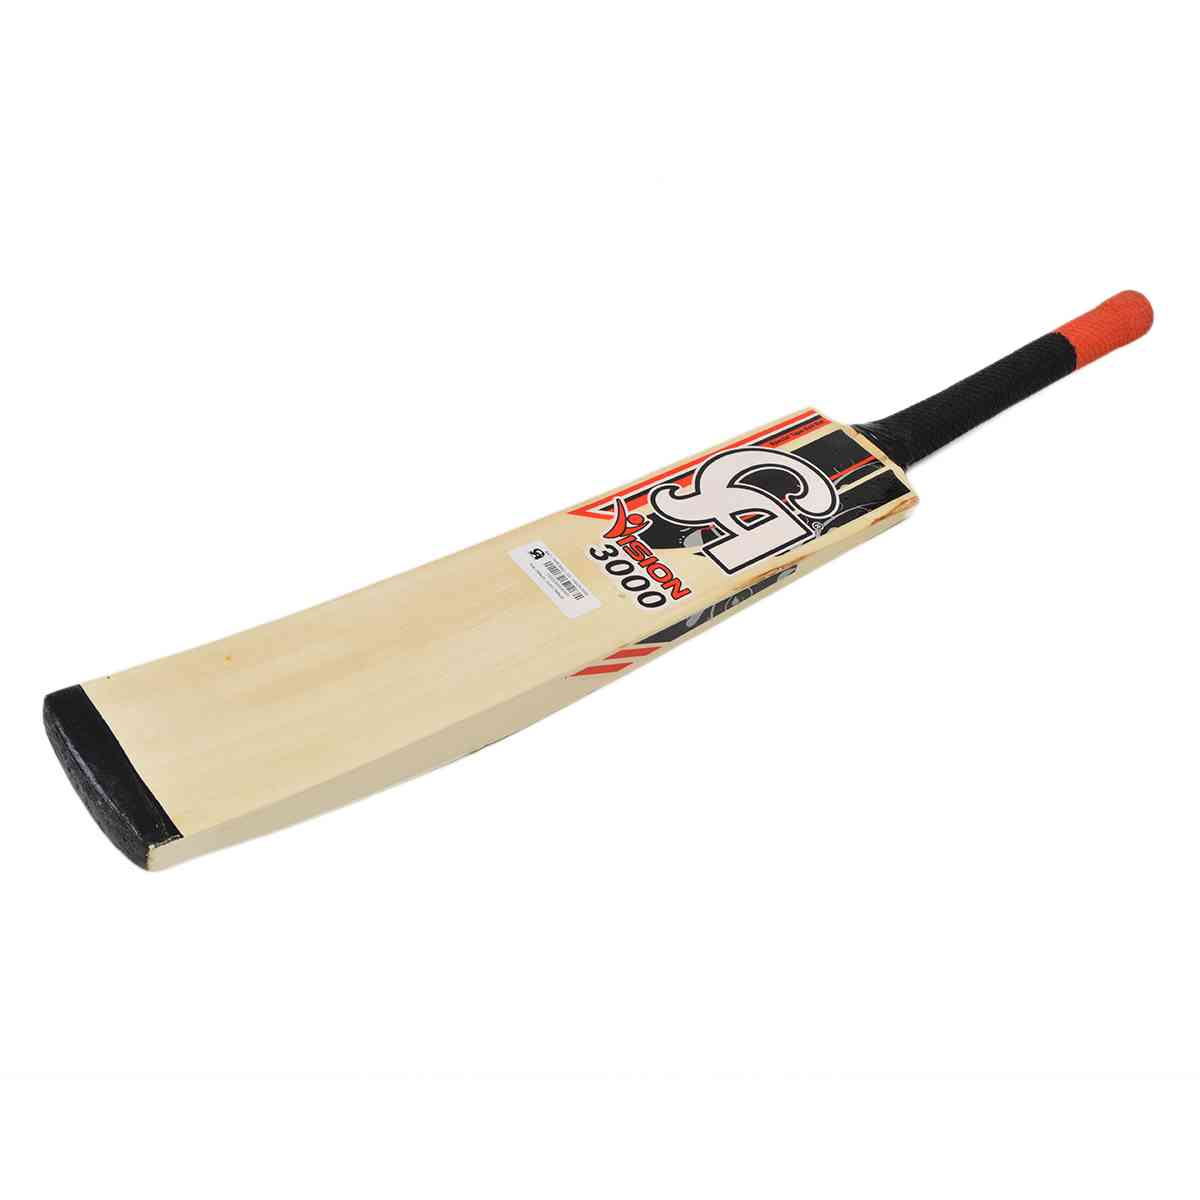 CA Vision 3000 Tape Ball Cricket Bat for Adults (34 Inch Length)